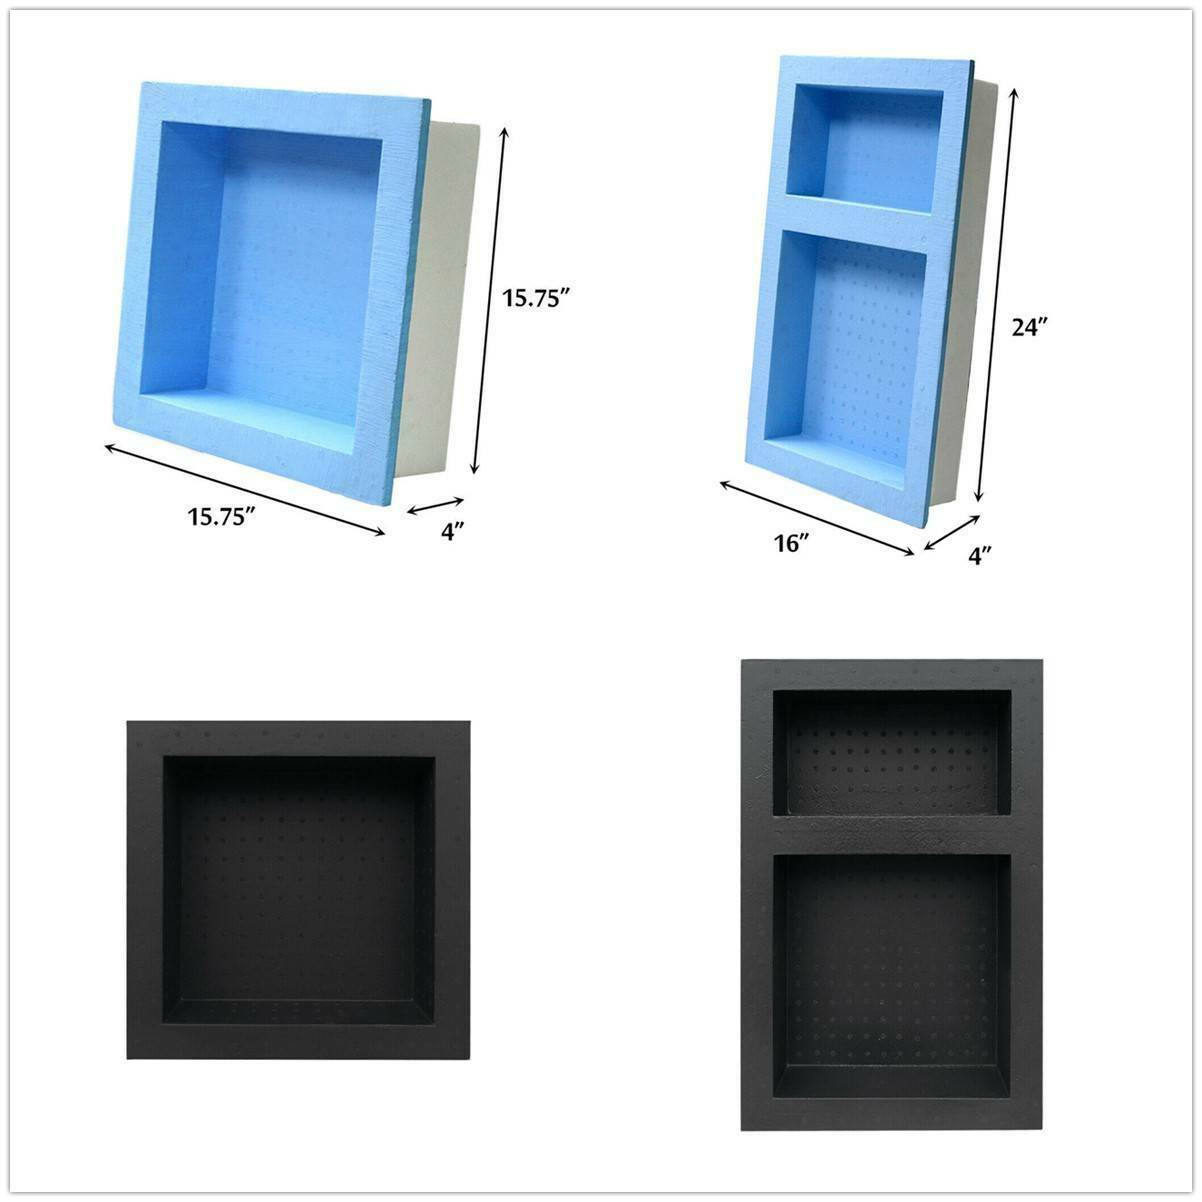 preformed double recessed shower niche ready to tile wild combo waterproof new